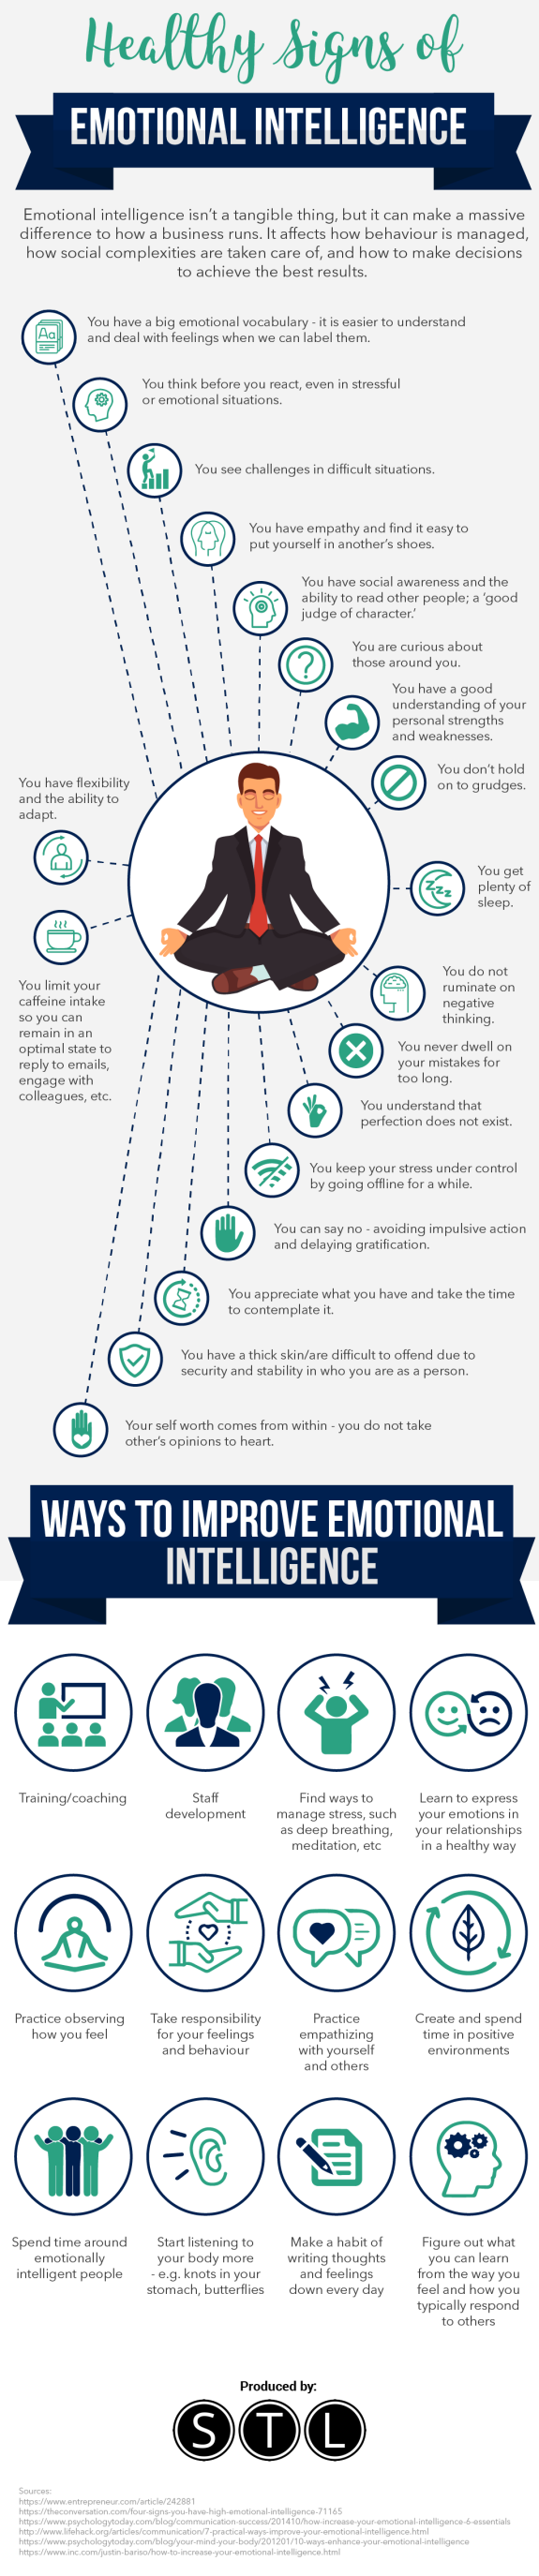 Healthy Signs of Emotional Intelligence